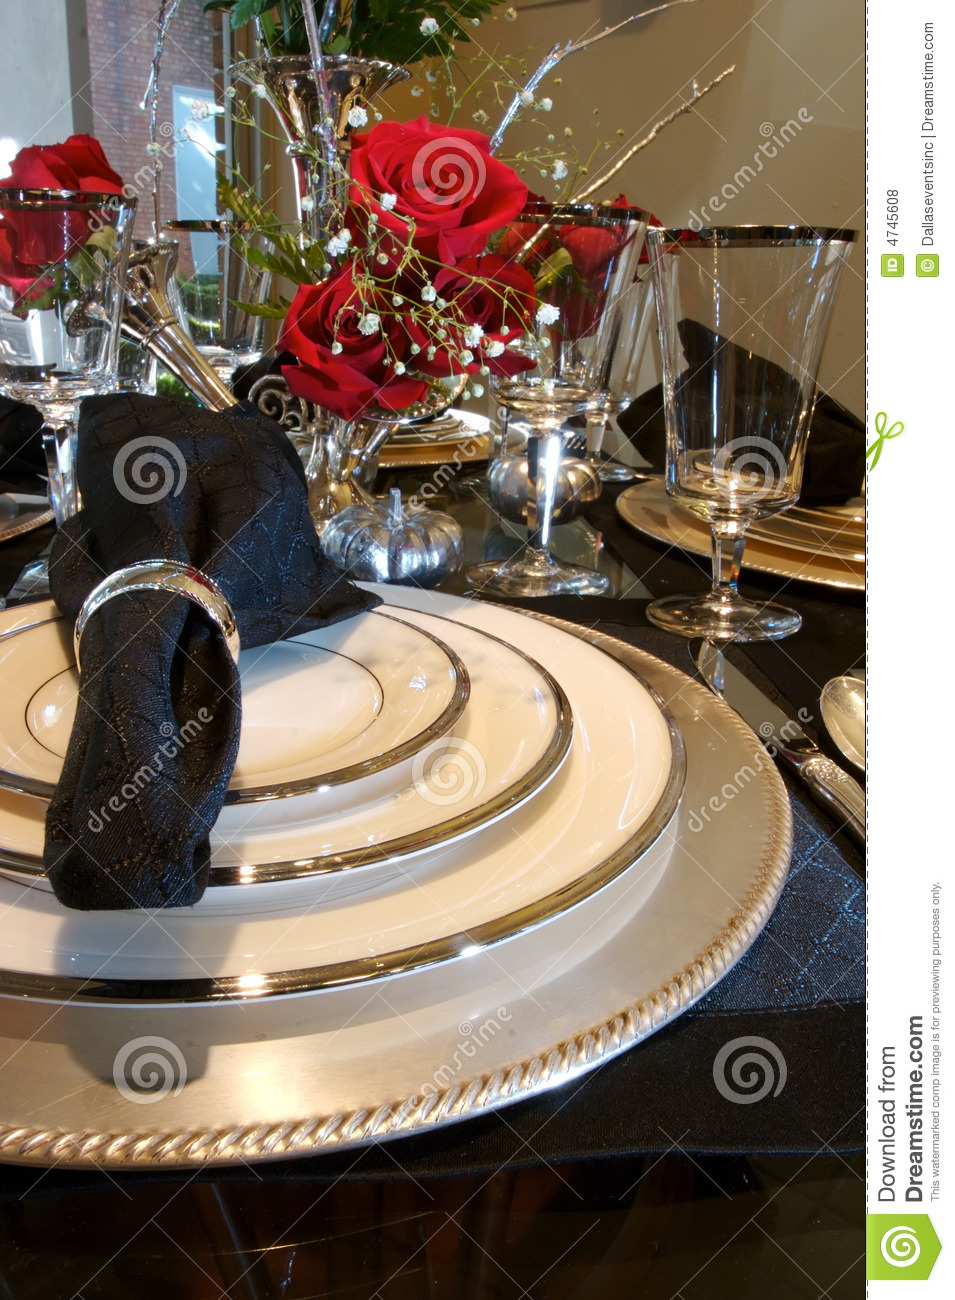 Formal Dining Room Place Setting Stock Photo Image Of Meal Dining 4745608